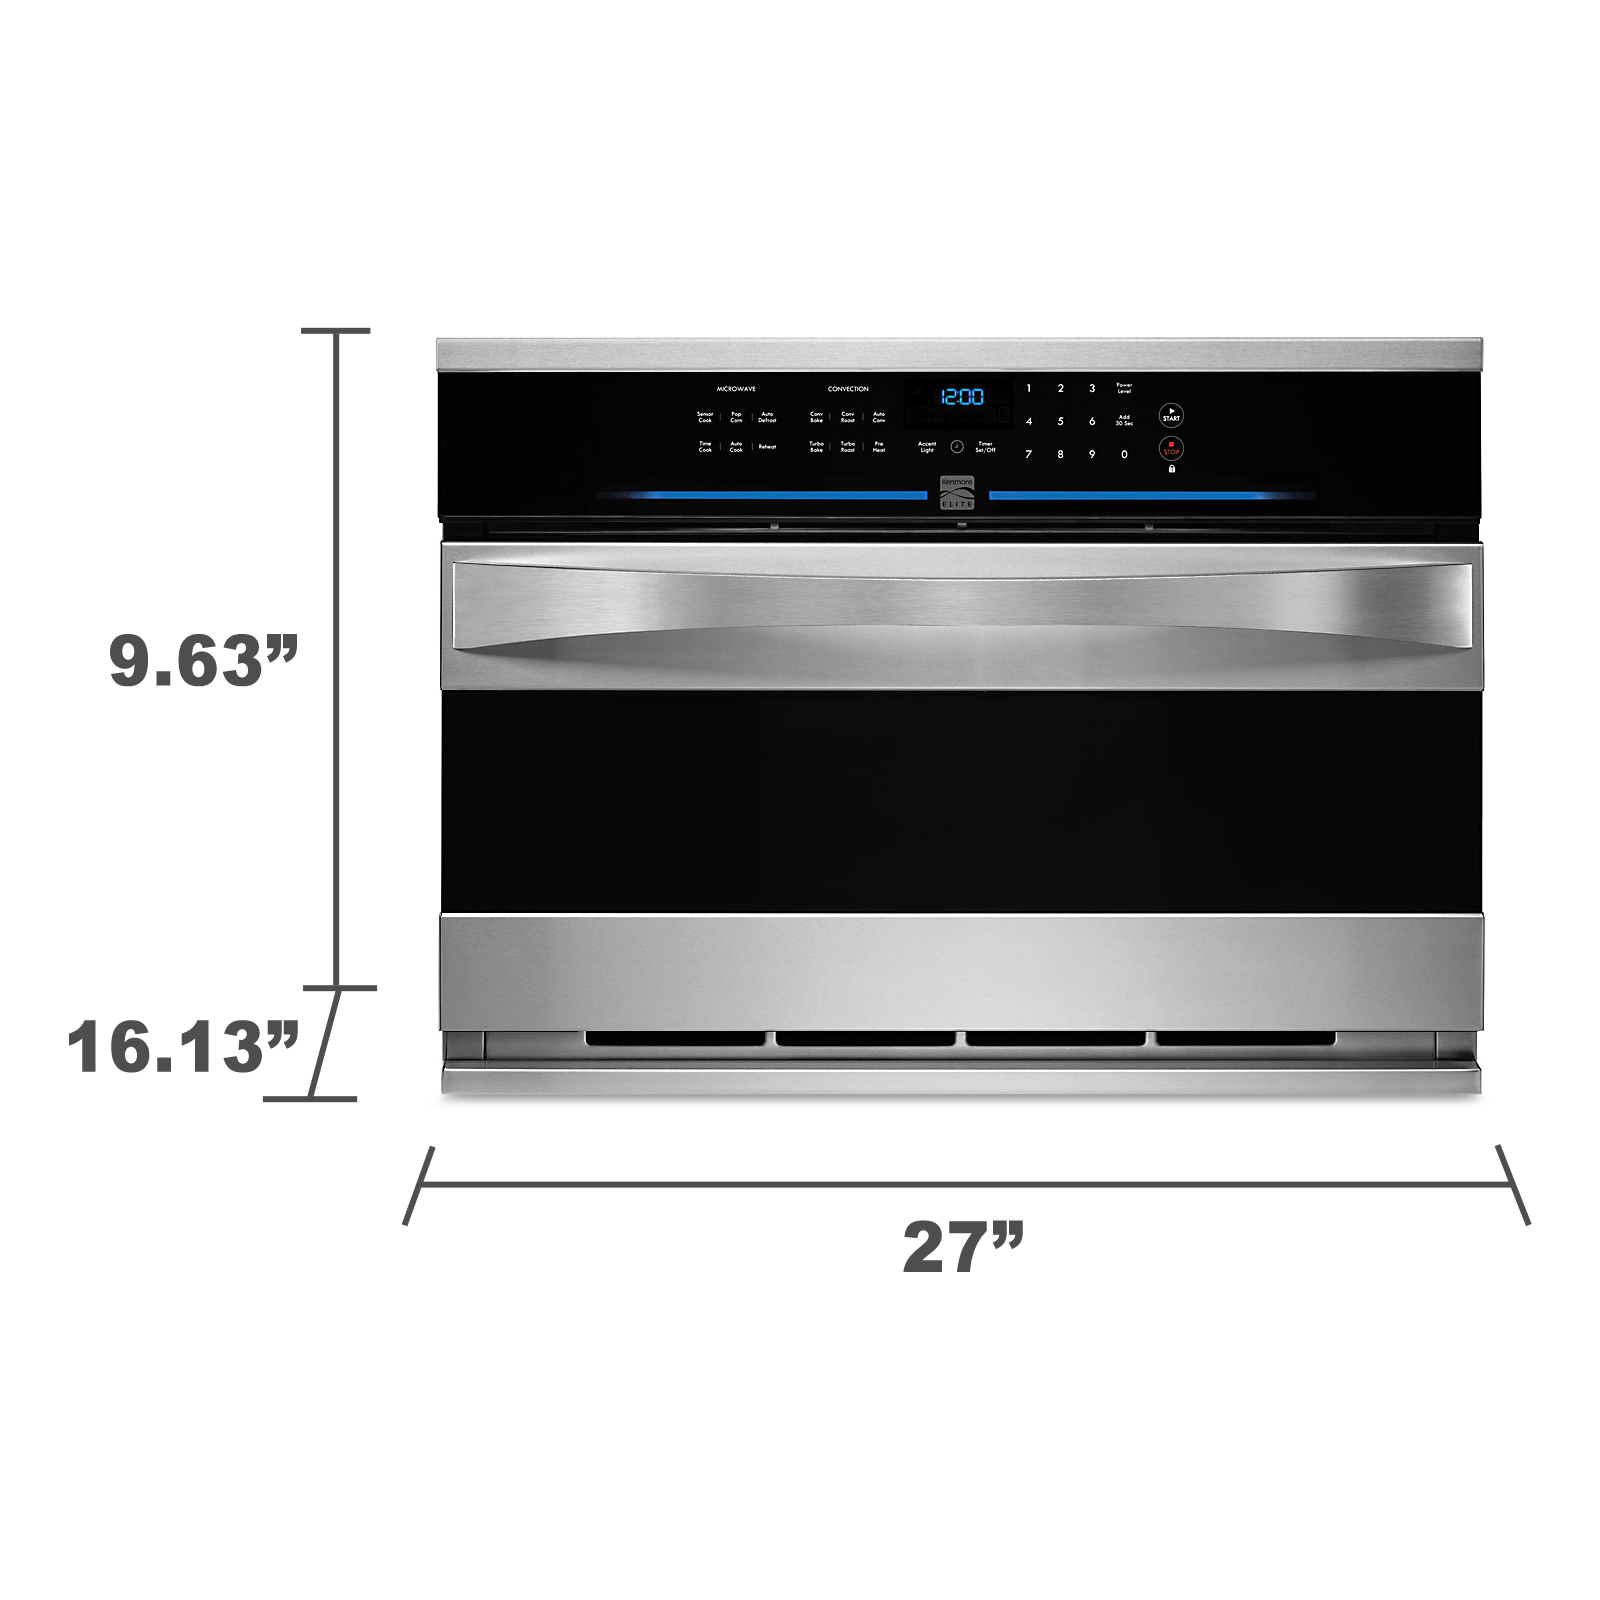 "Kenmore Elite 48893 27"" Built-in Convection Microwave - Stainless Steel"